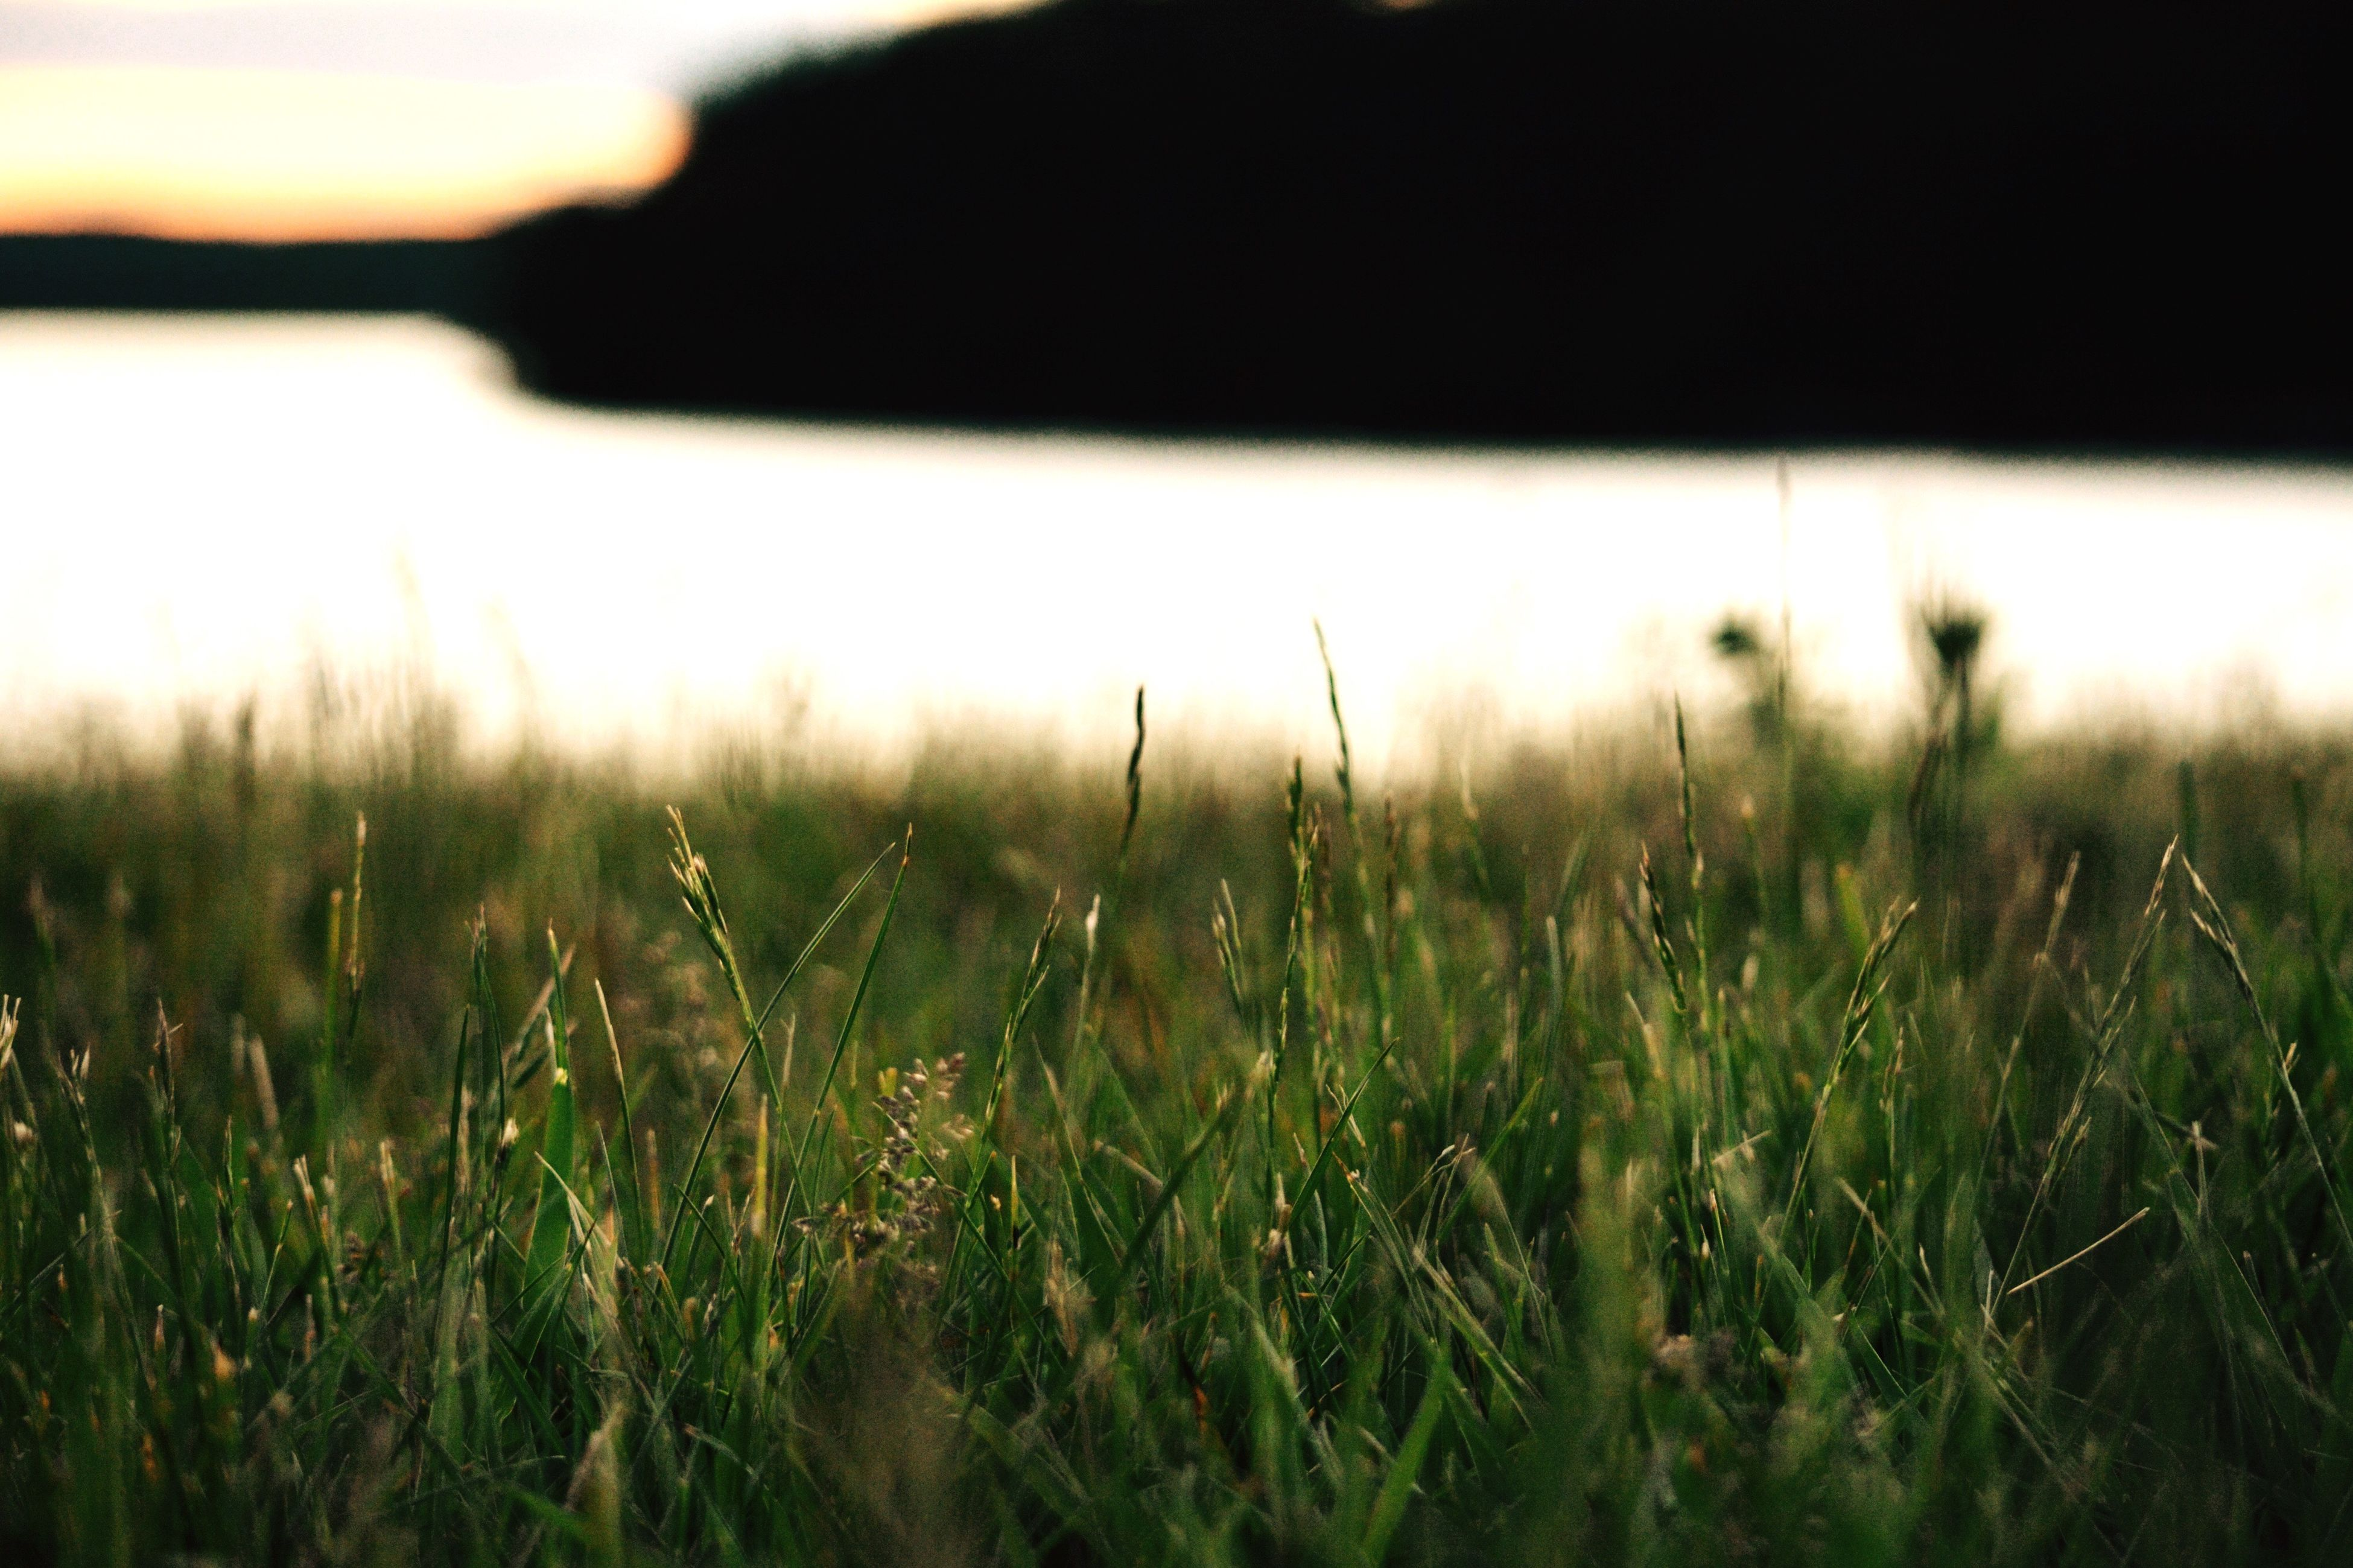 grass, field, growth, nature, tranquility, beauty in nature, no people, outdoors, landscape, close-up, day, wheat, sky